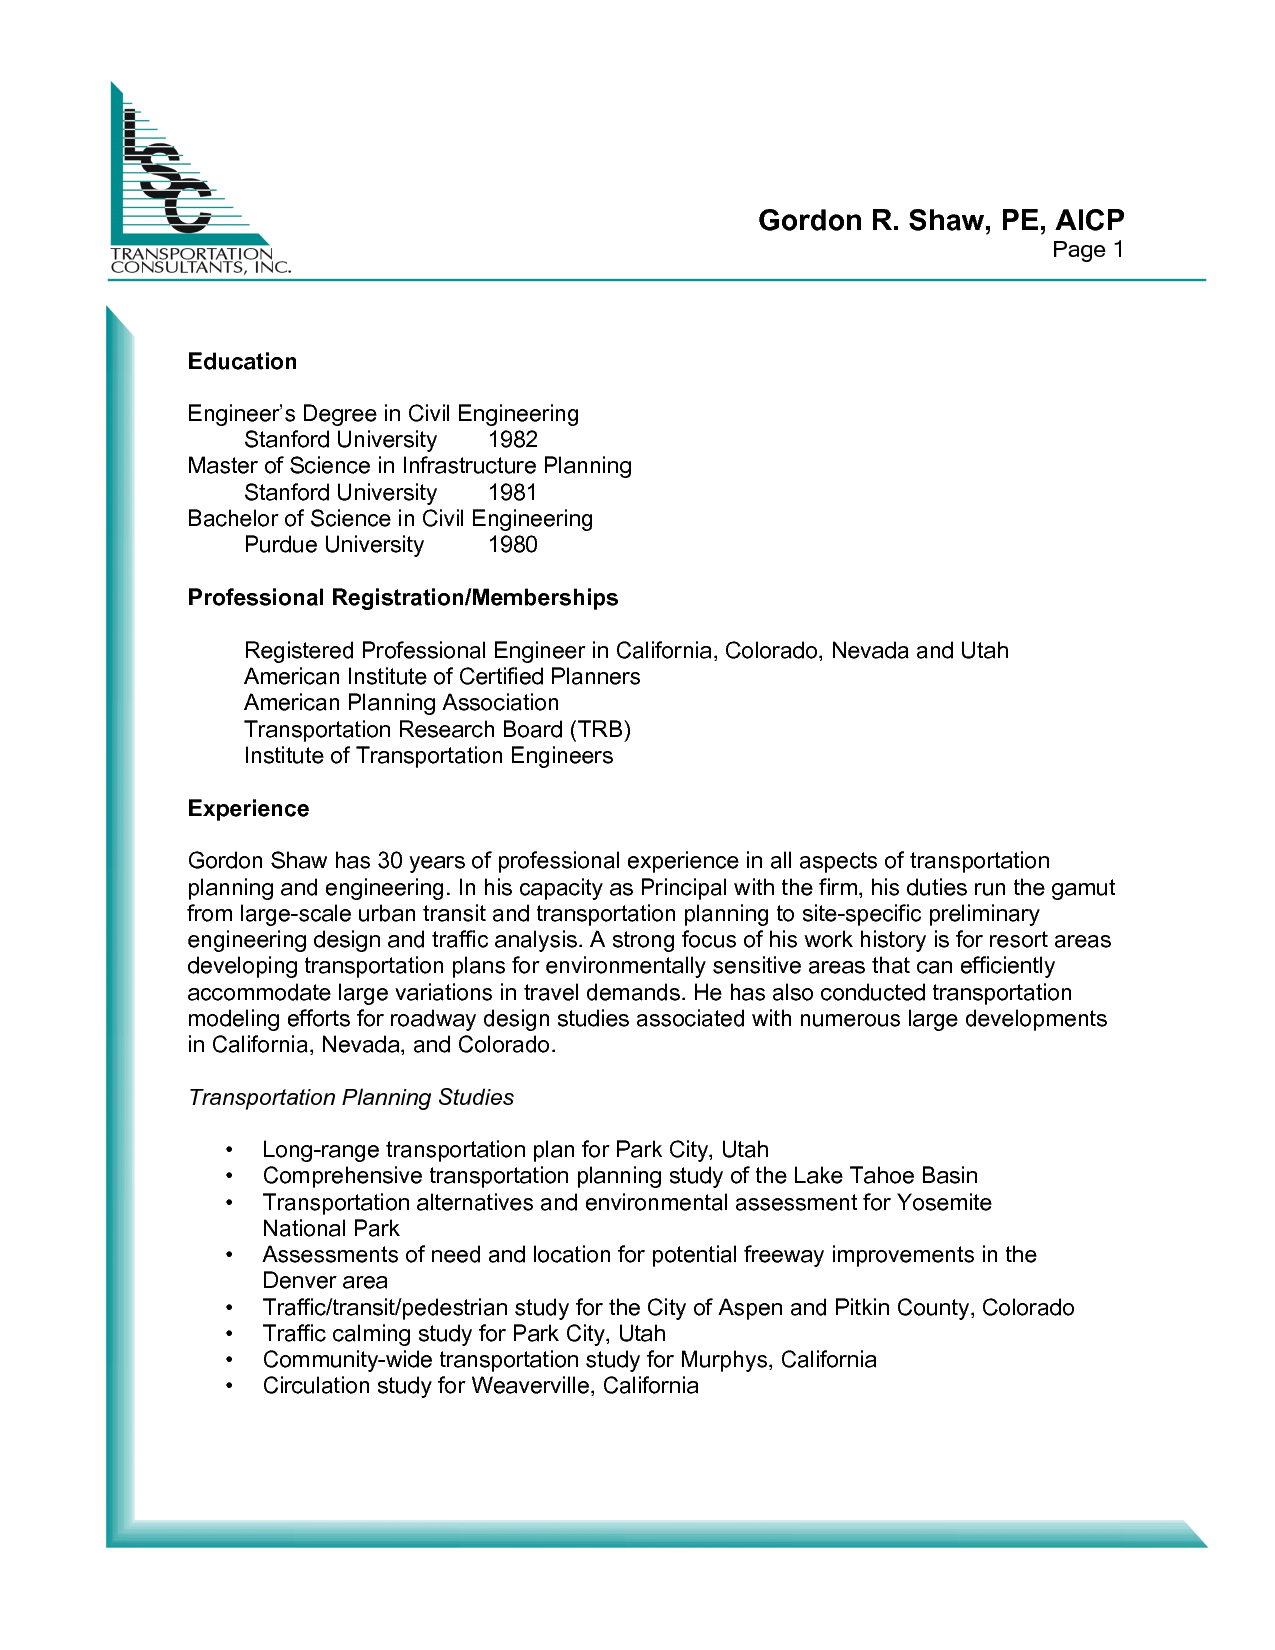 Civil supervisor sample resume inclusion assistant for engineer comprehensive resume format resume sample resume of retail sales associate job resume format yelopaper Gallery